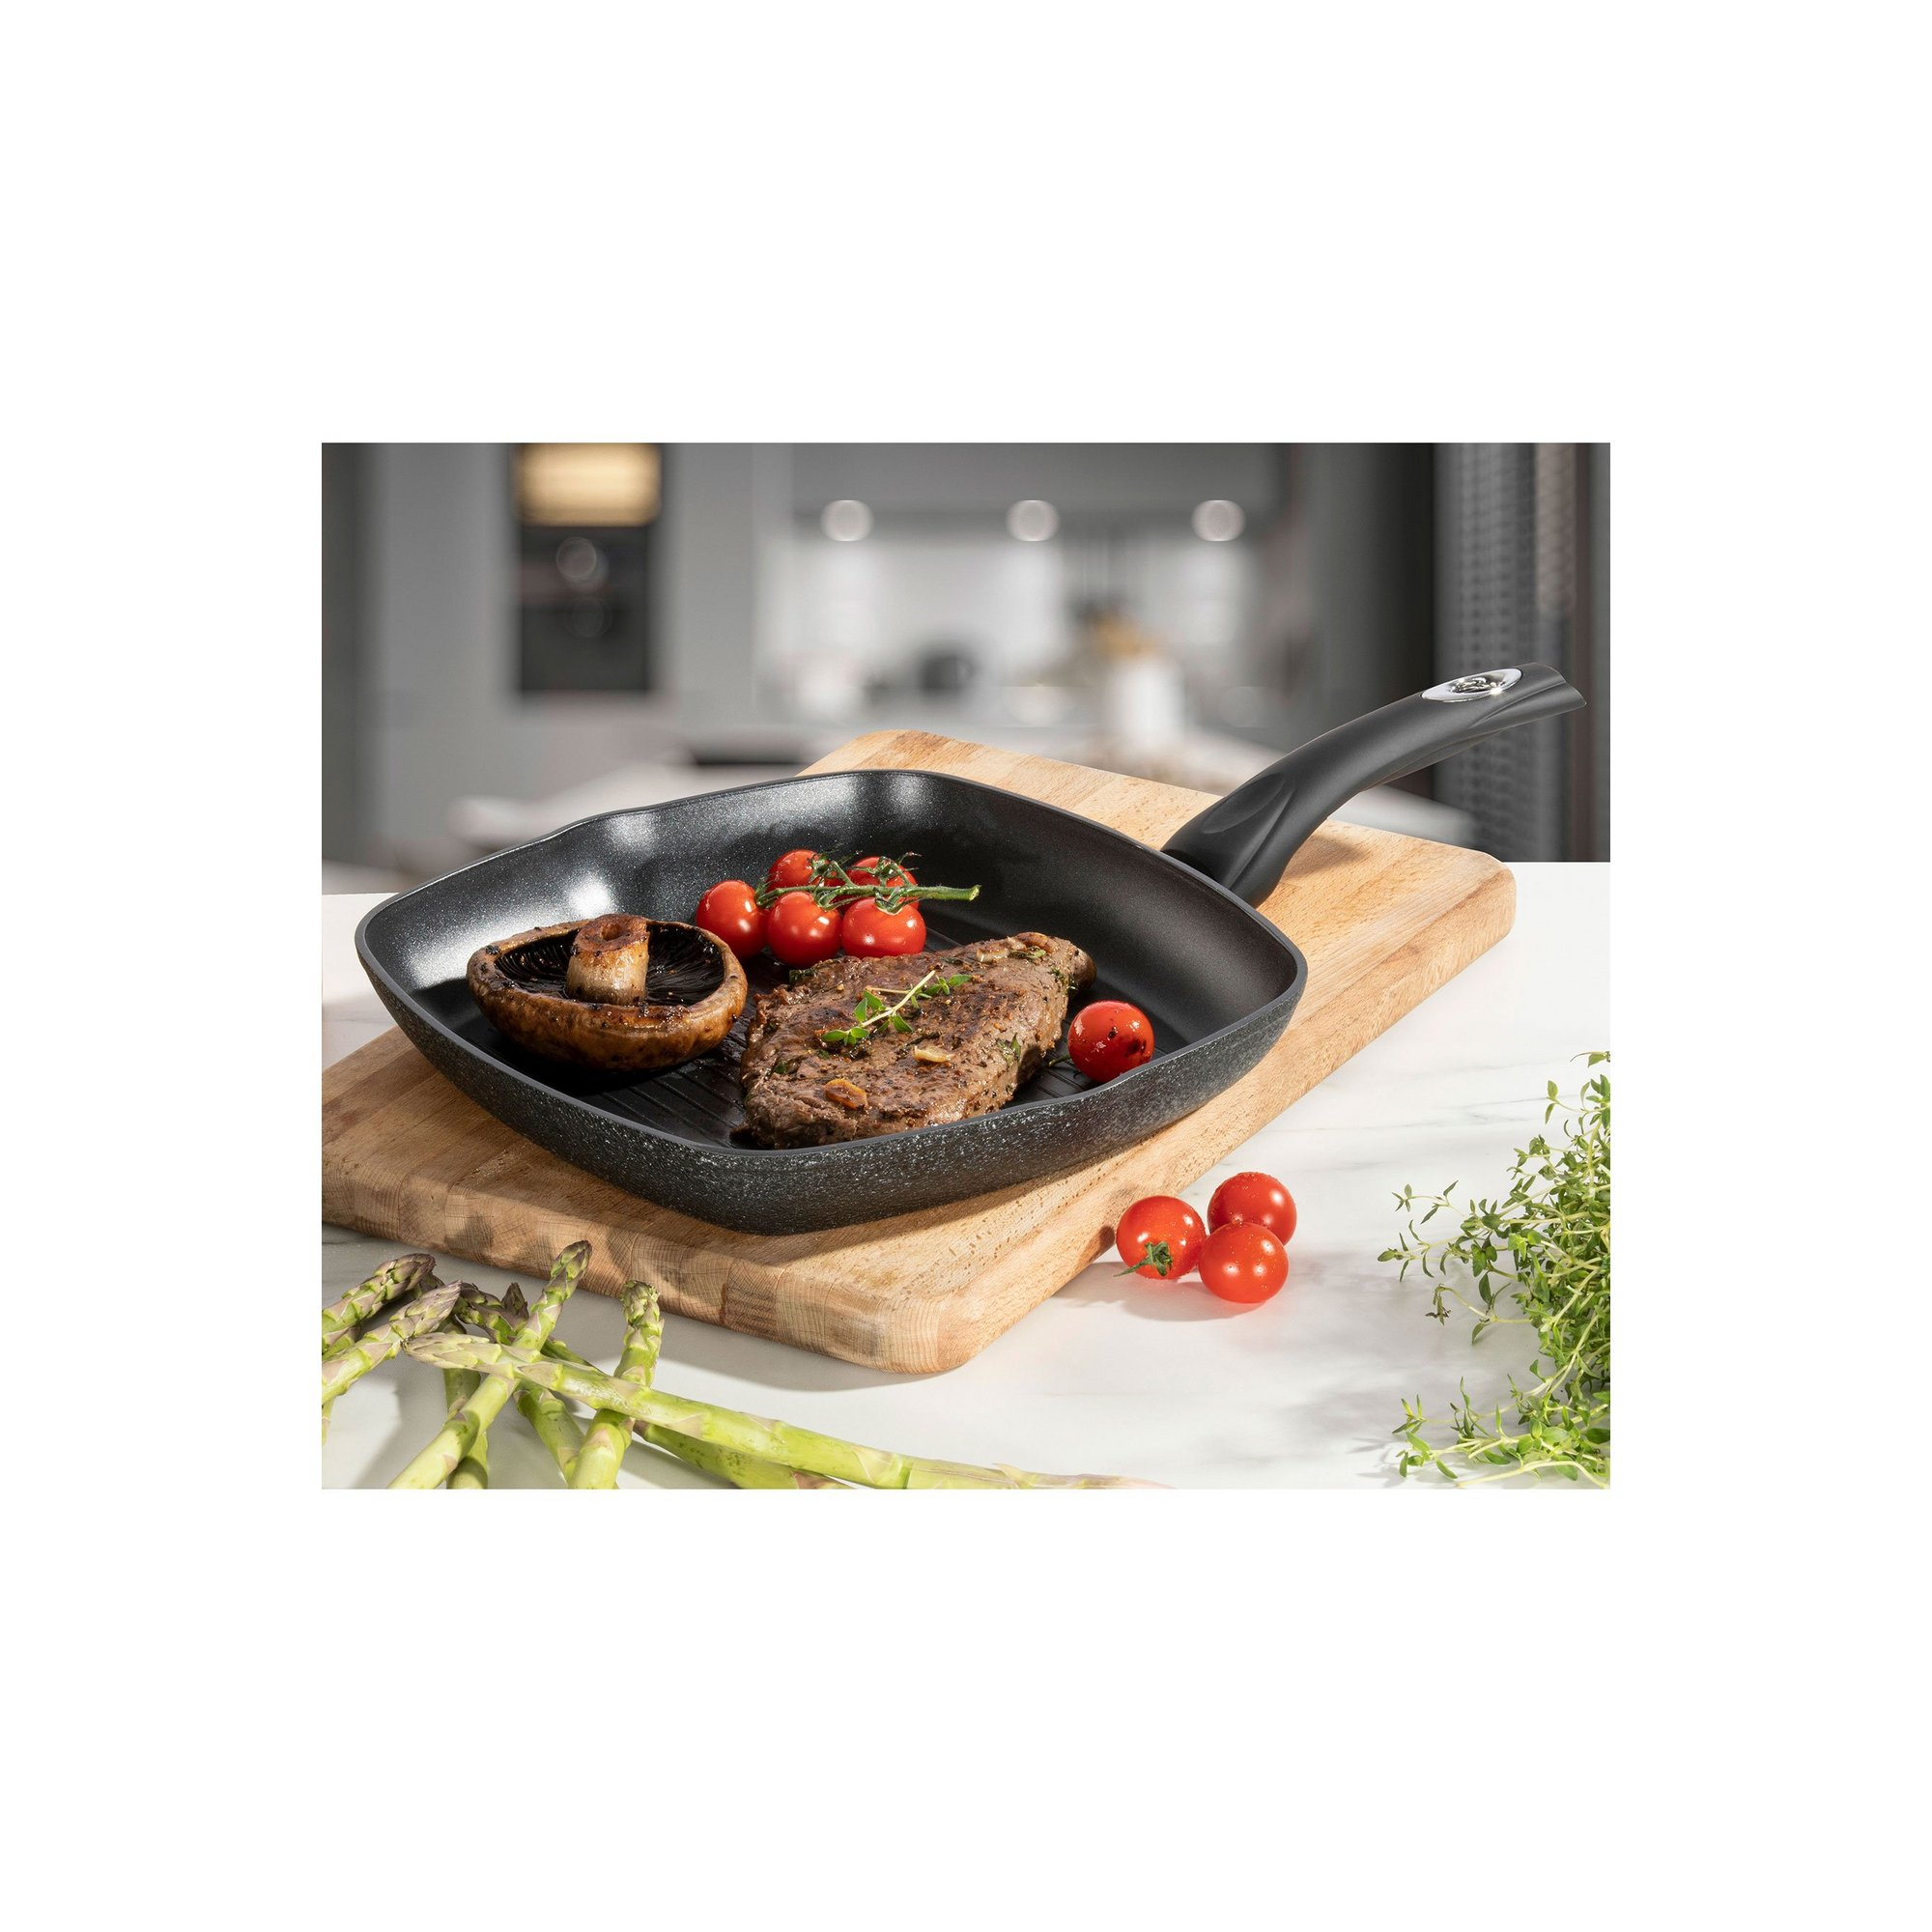 Image of Daewoo Glace Noir 28cm Grill Pan